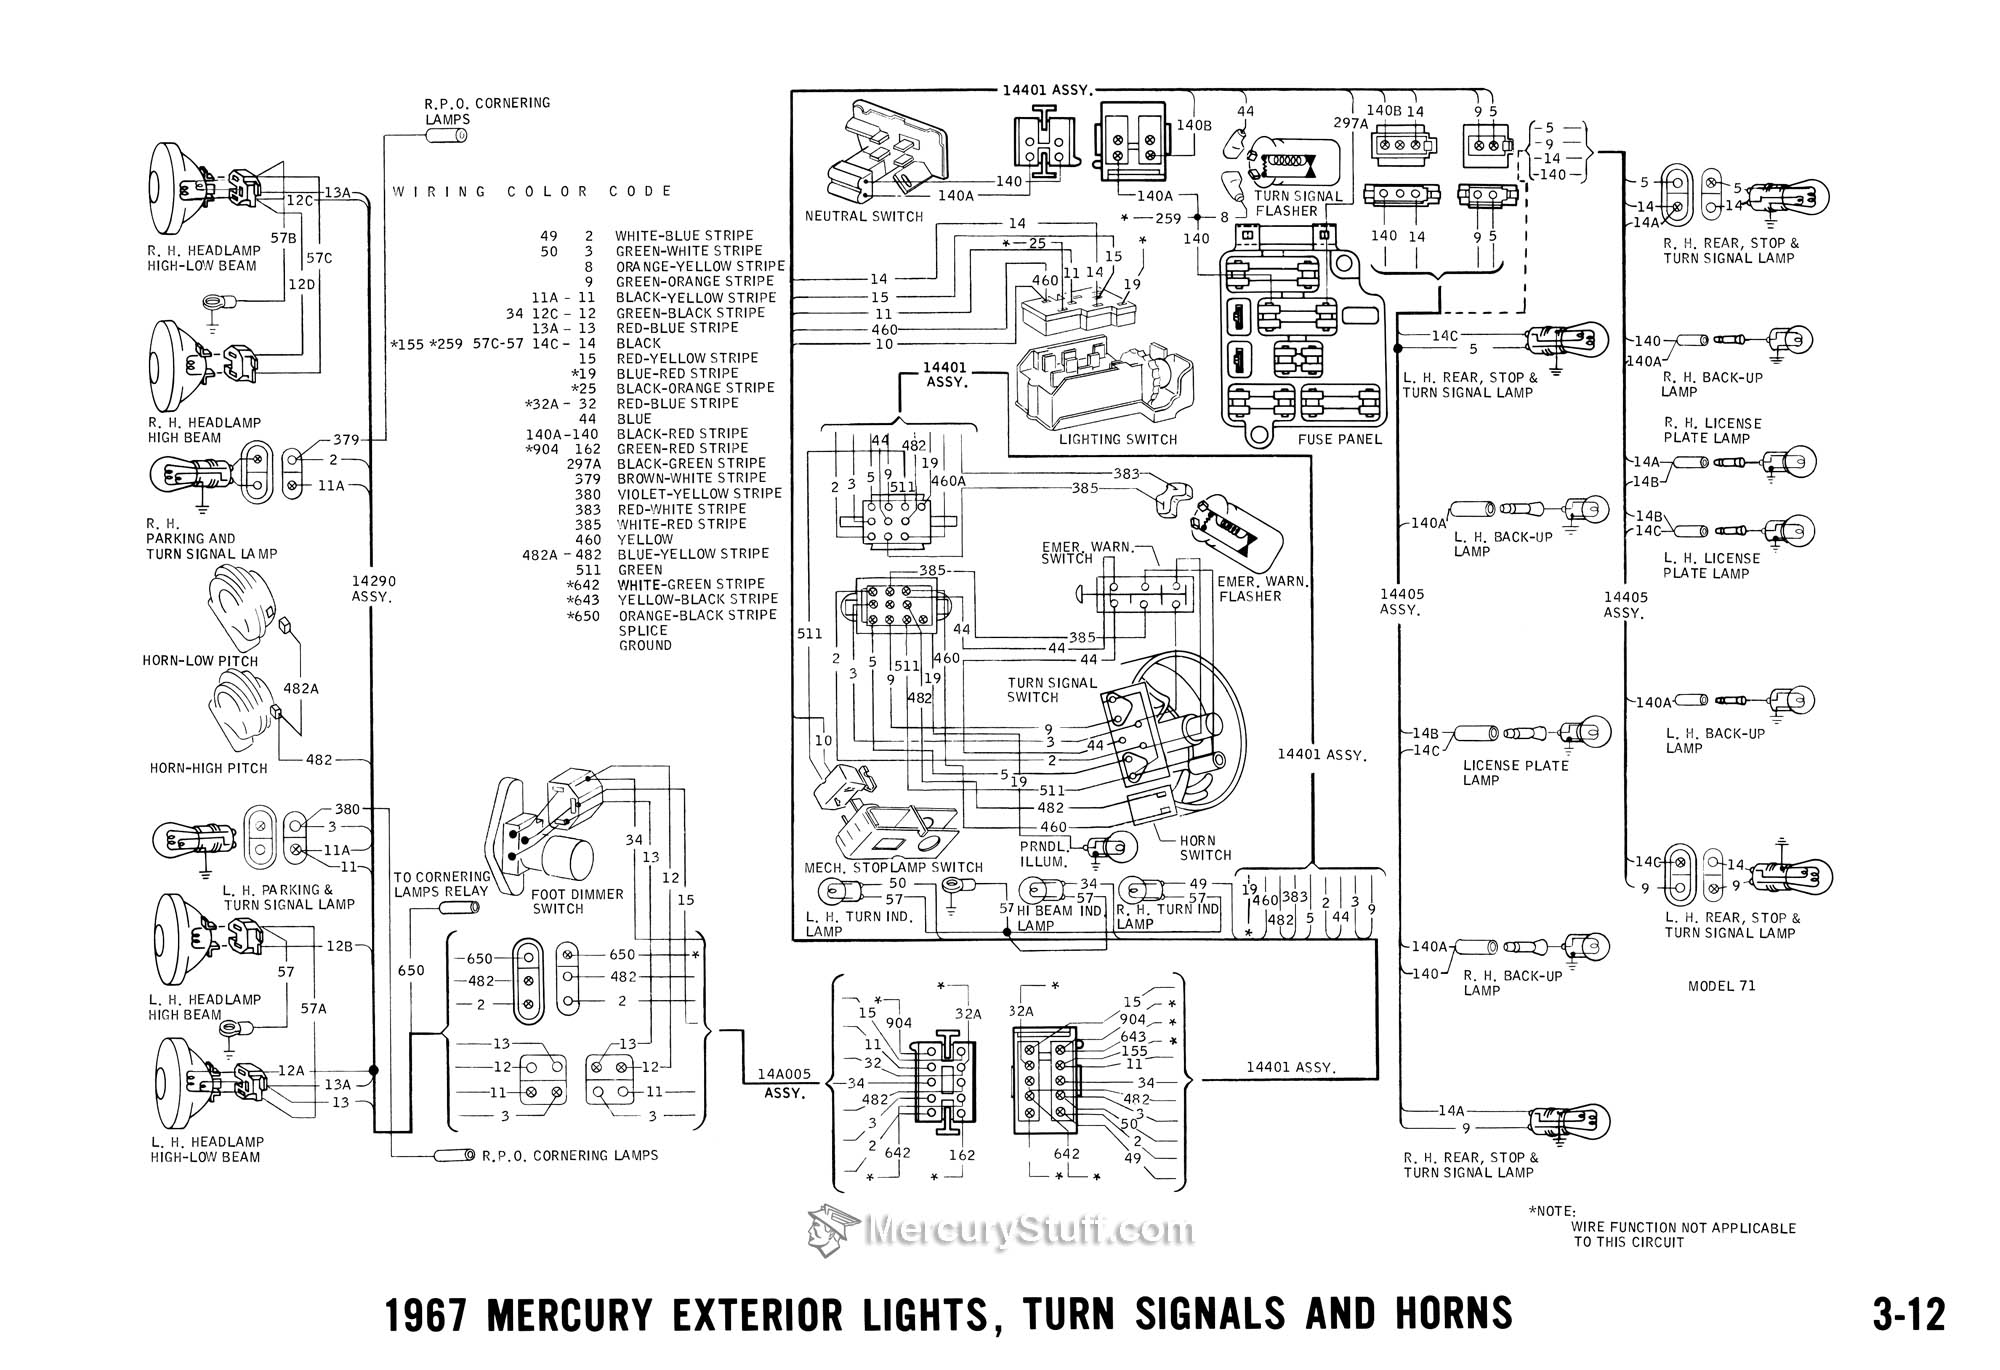 1967 mercury exterior lights turn signals horns wiring diagram 2006 mercury grand marquis the wiring diagram mercury 14 pin wiring harness diagram at crackthecode.co